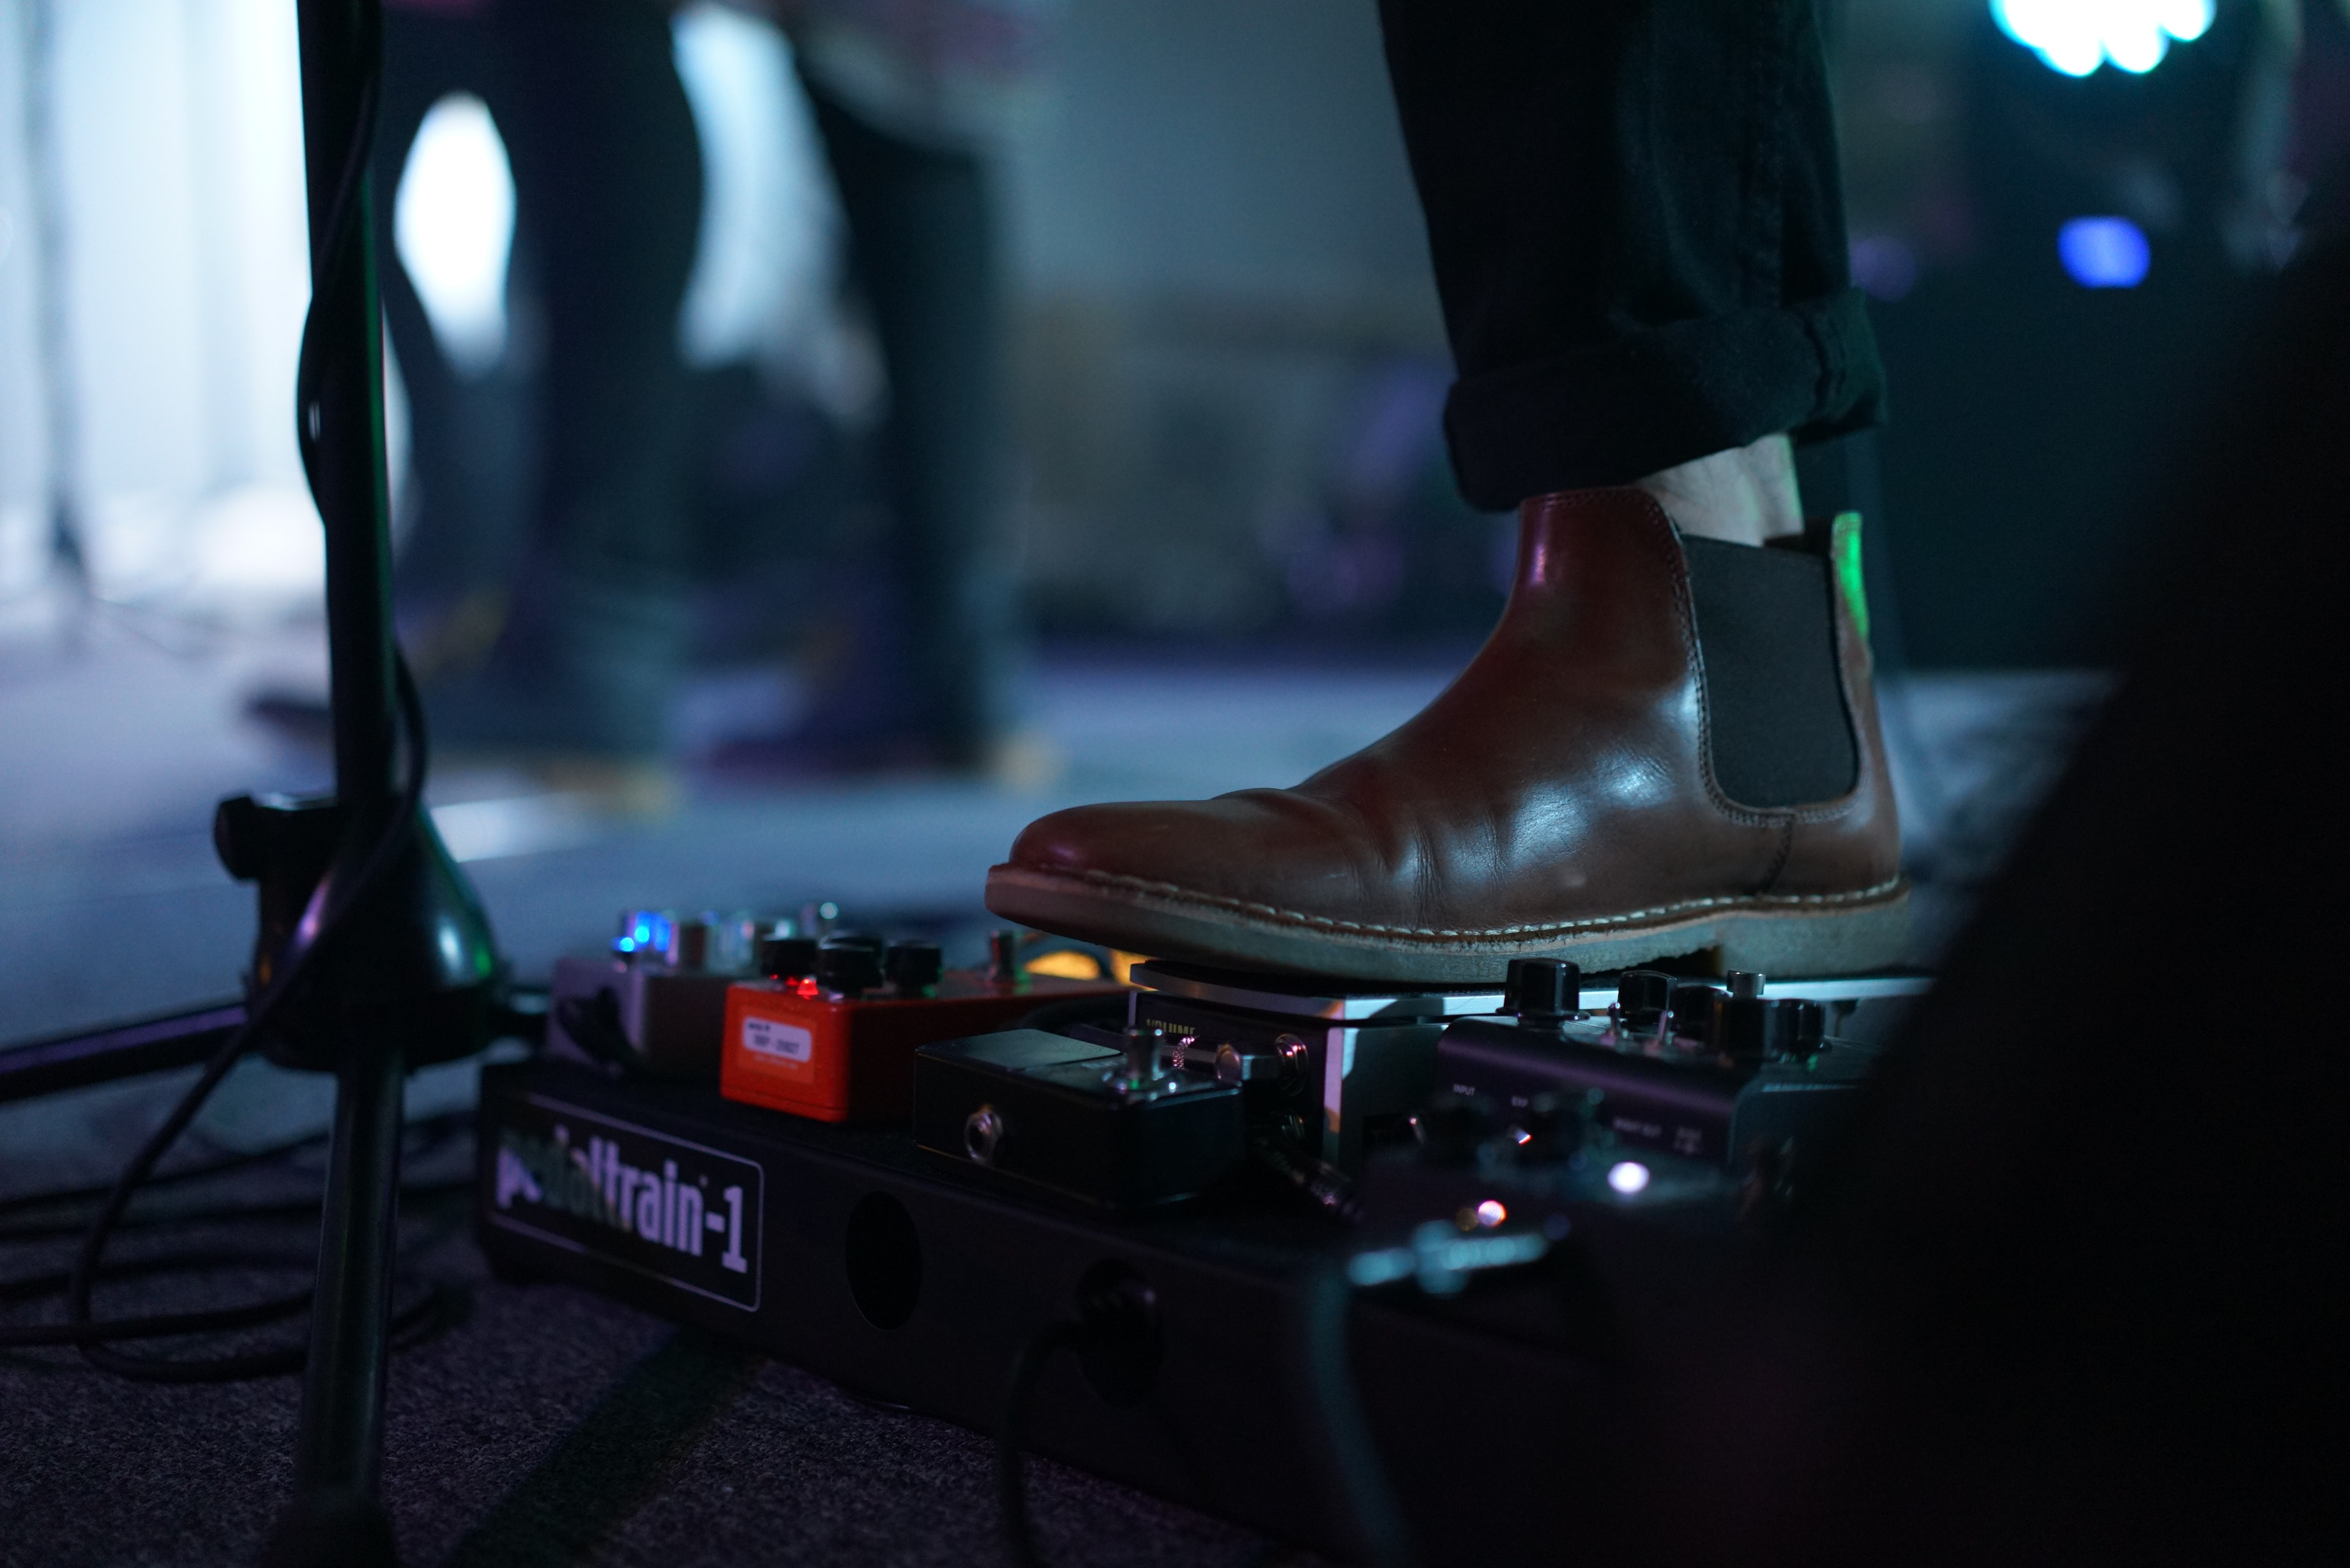 Musician's boot steps on guitar pedal near microphone stand